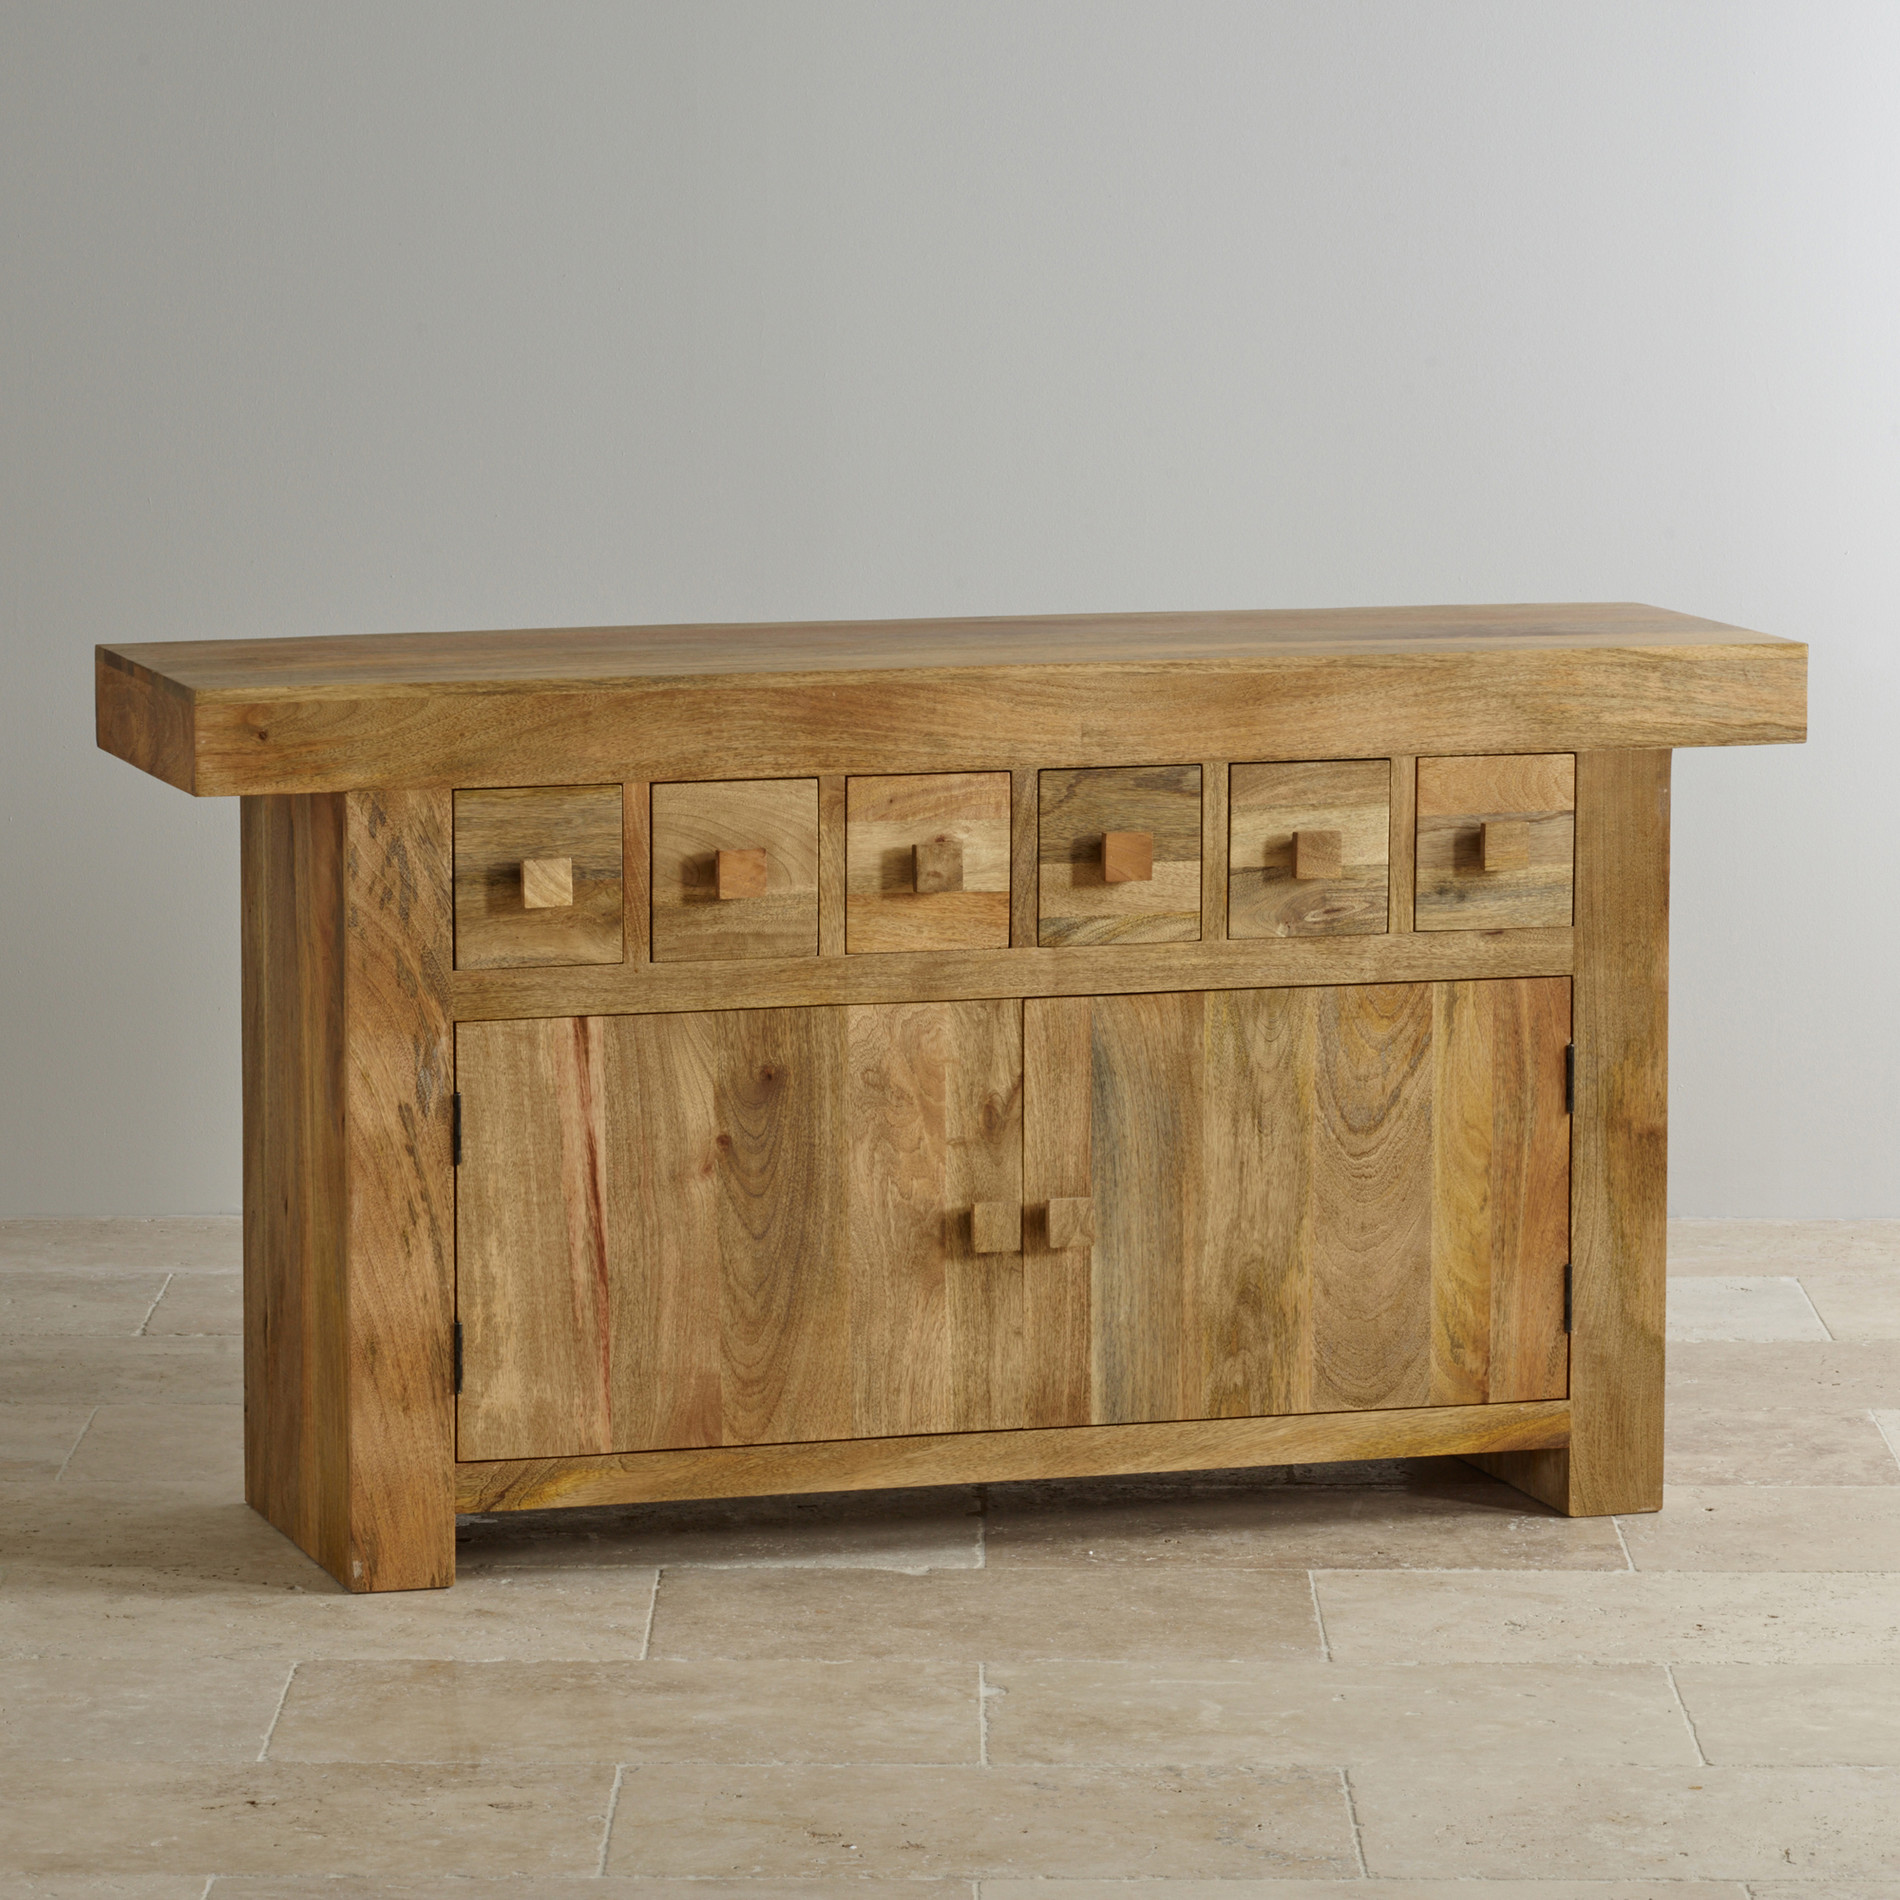 Mantis Light Sideboard in Natural Solid Mango